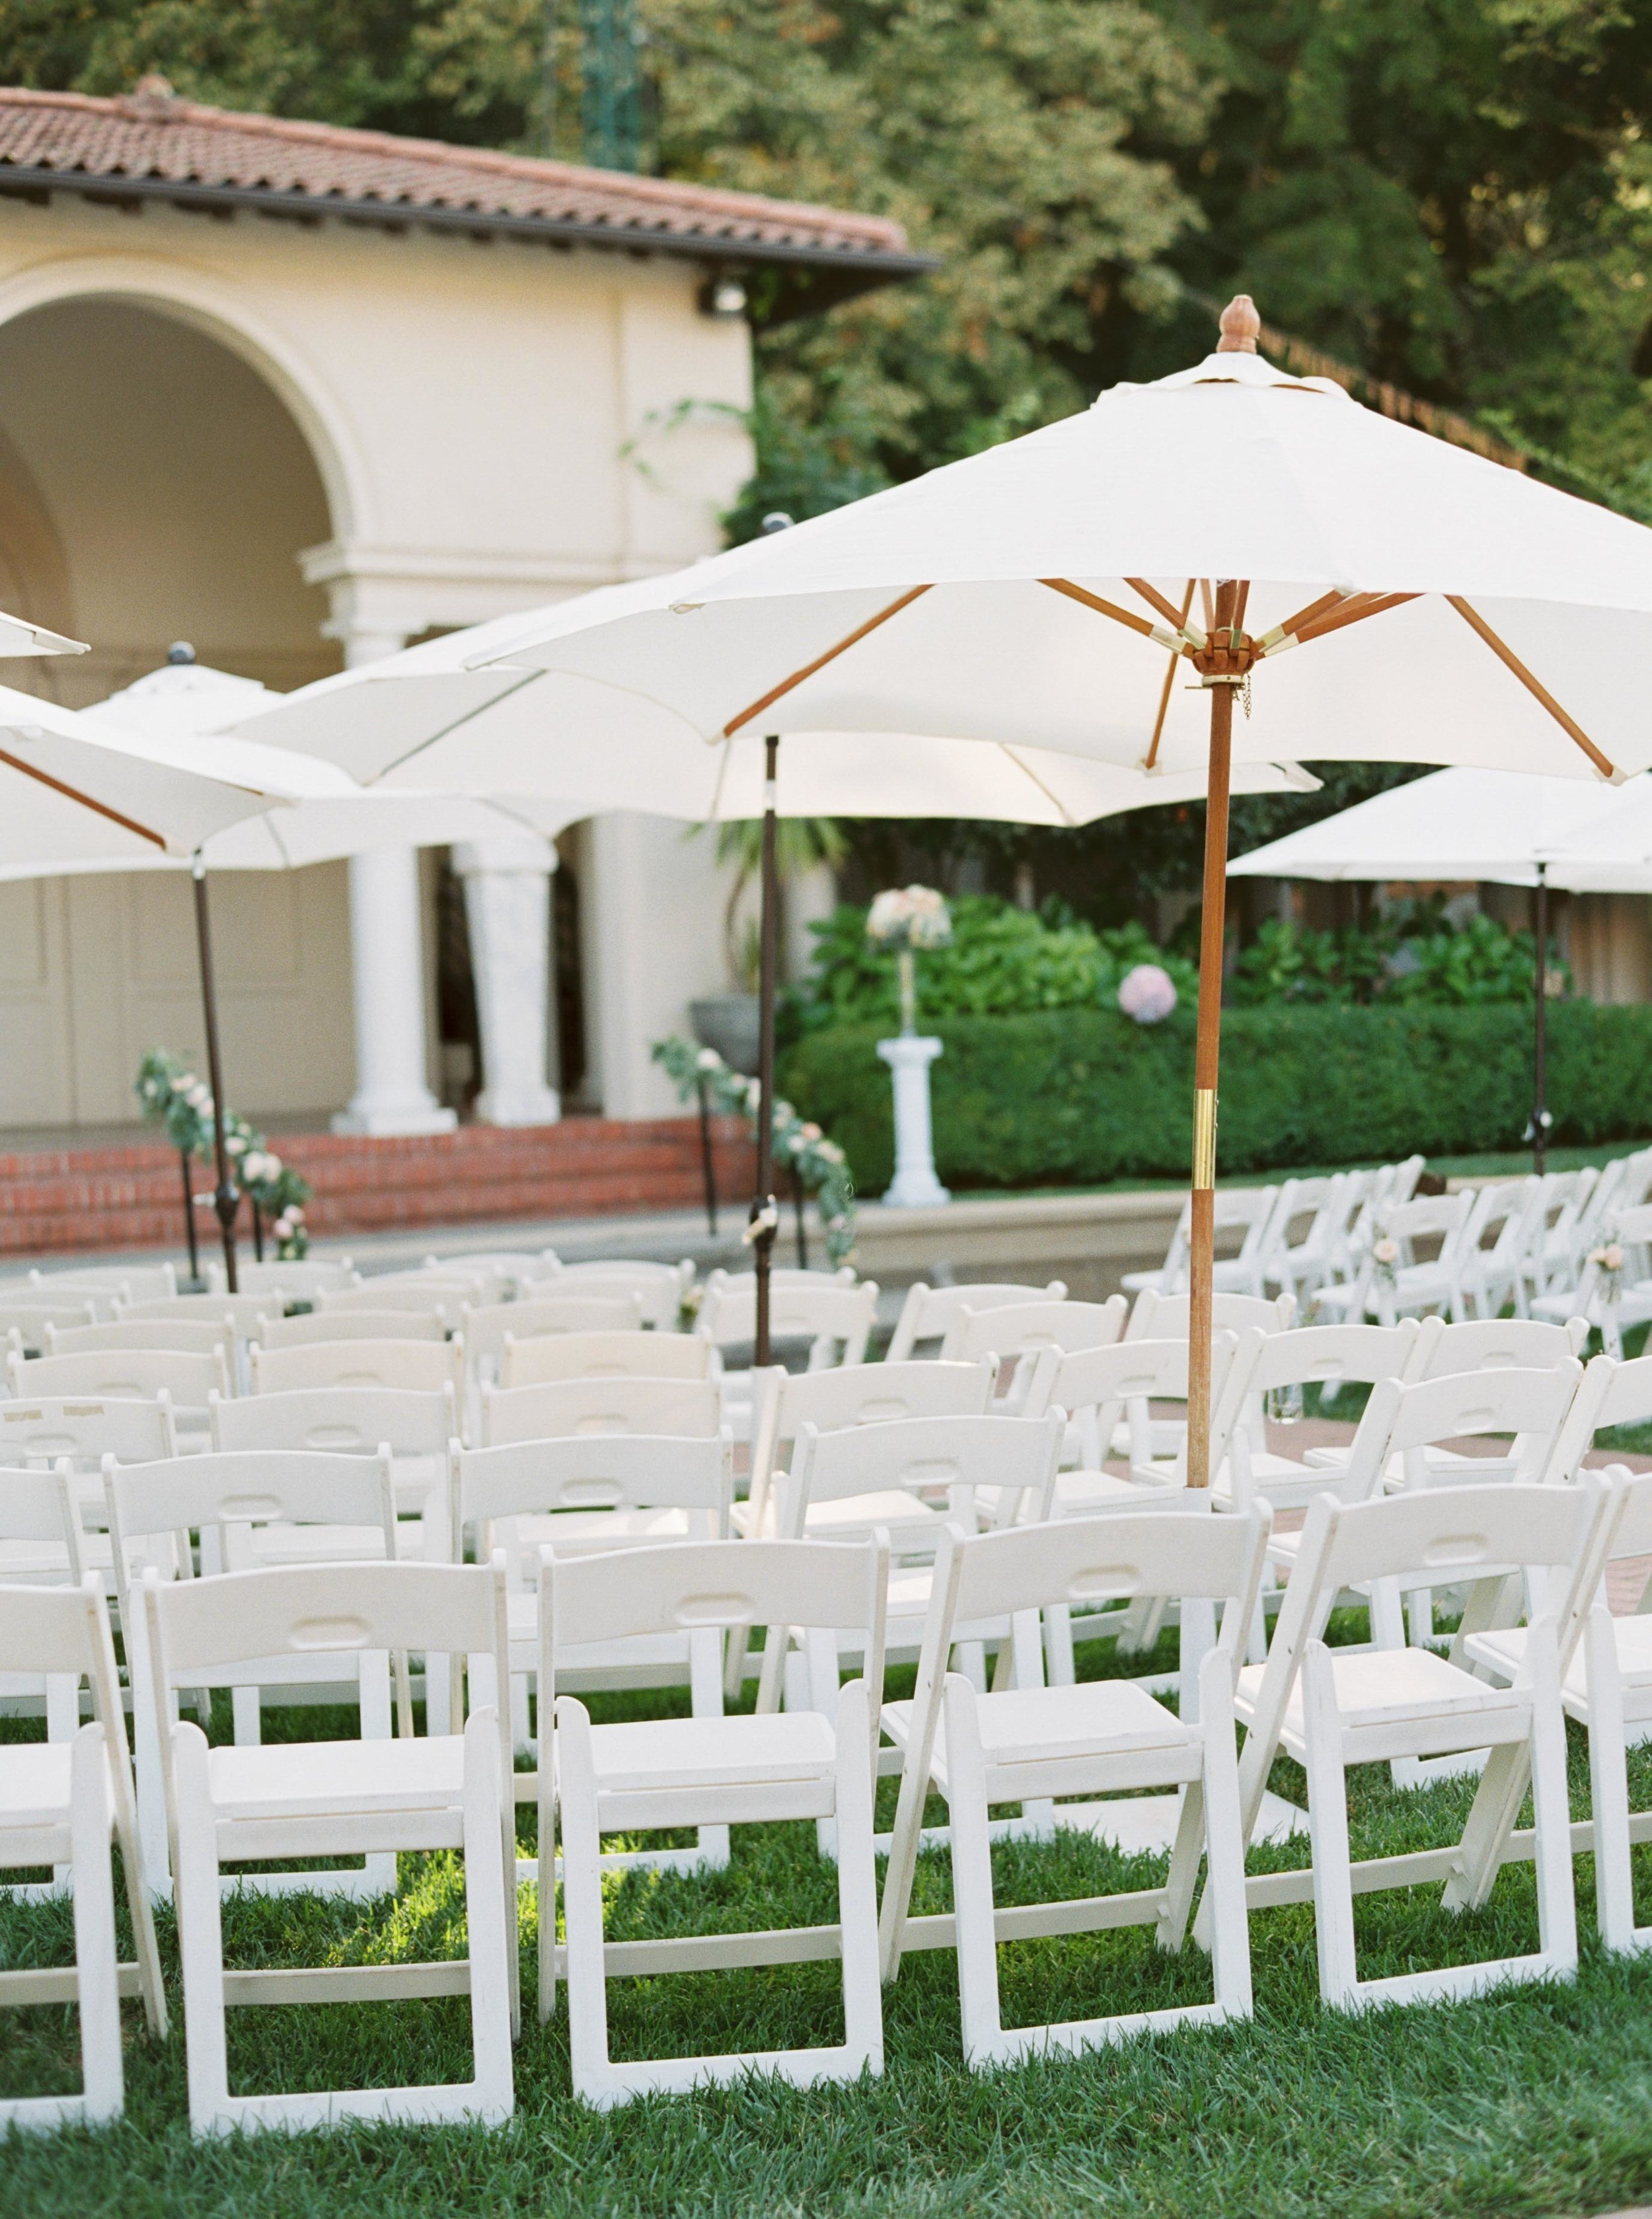 Villa_Montalvo_Wedding_Photographer_Videographer_San_Francisco093.jpg